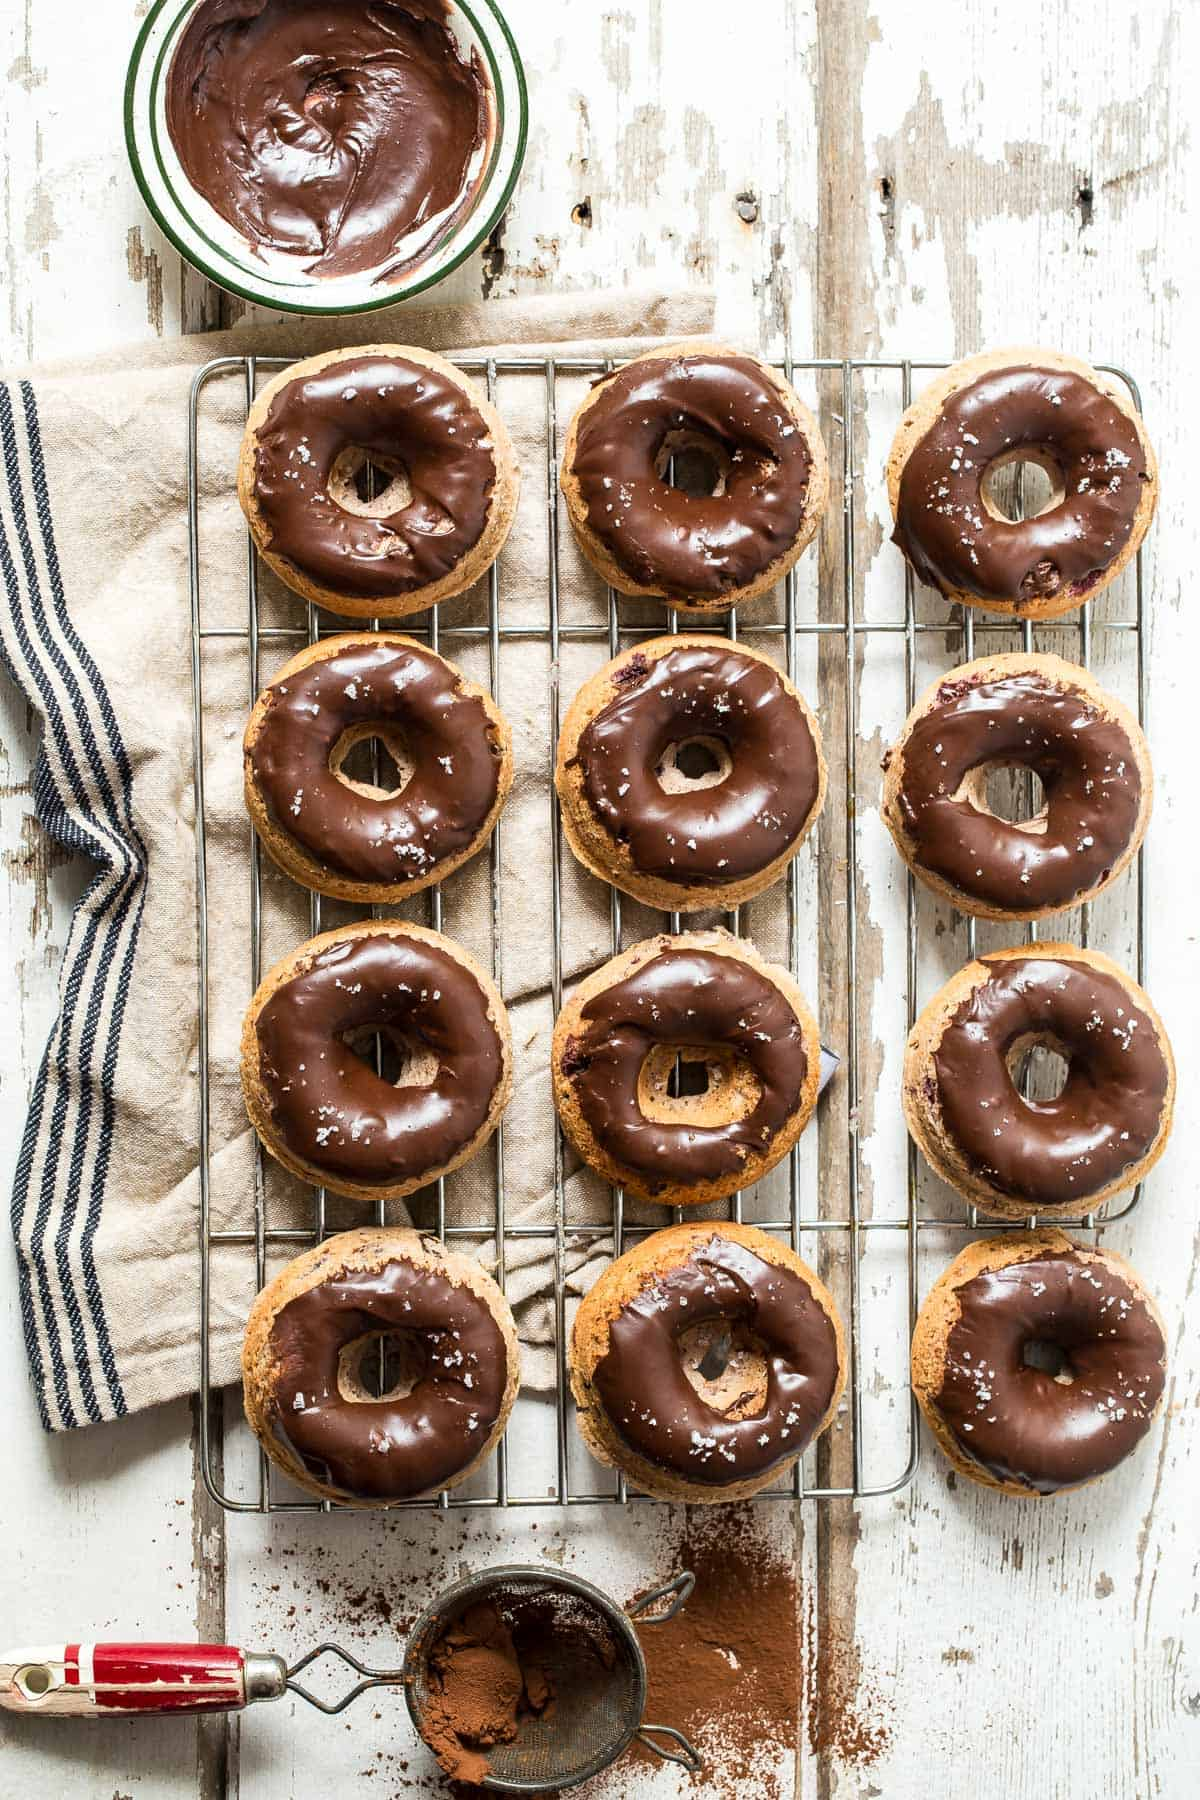 Cherry and Chocolate Glazed Baked Donuts - Foodness Gracious